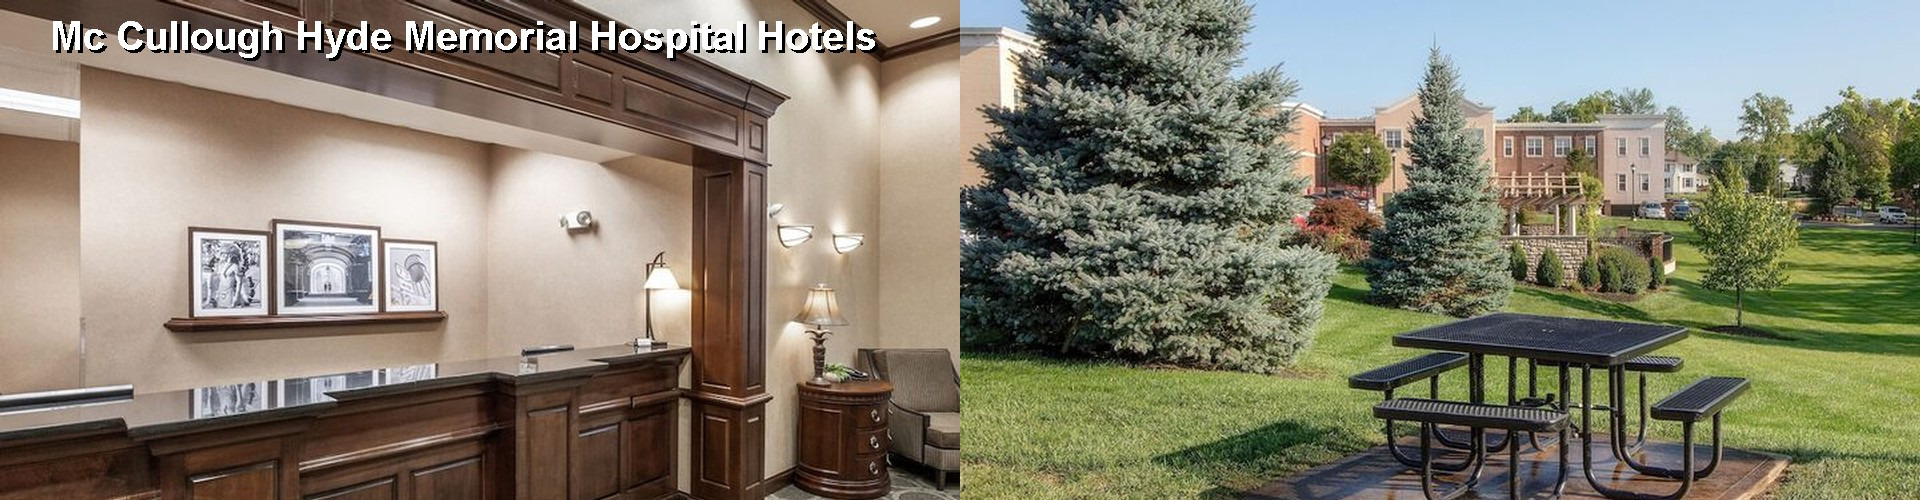 5 Best Hotels near Mc Cullough Hyde Memorial Hospital